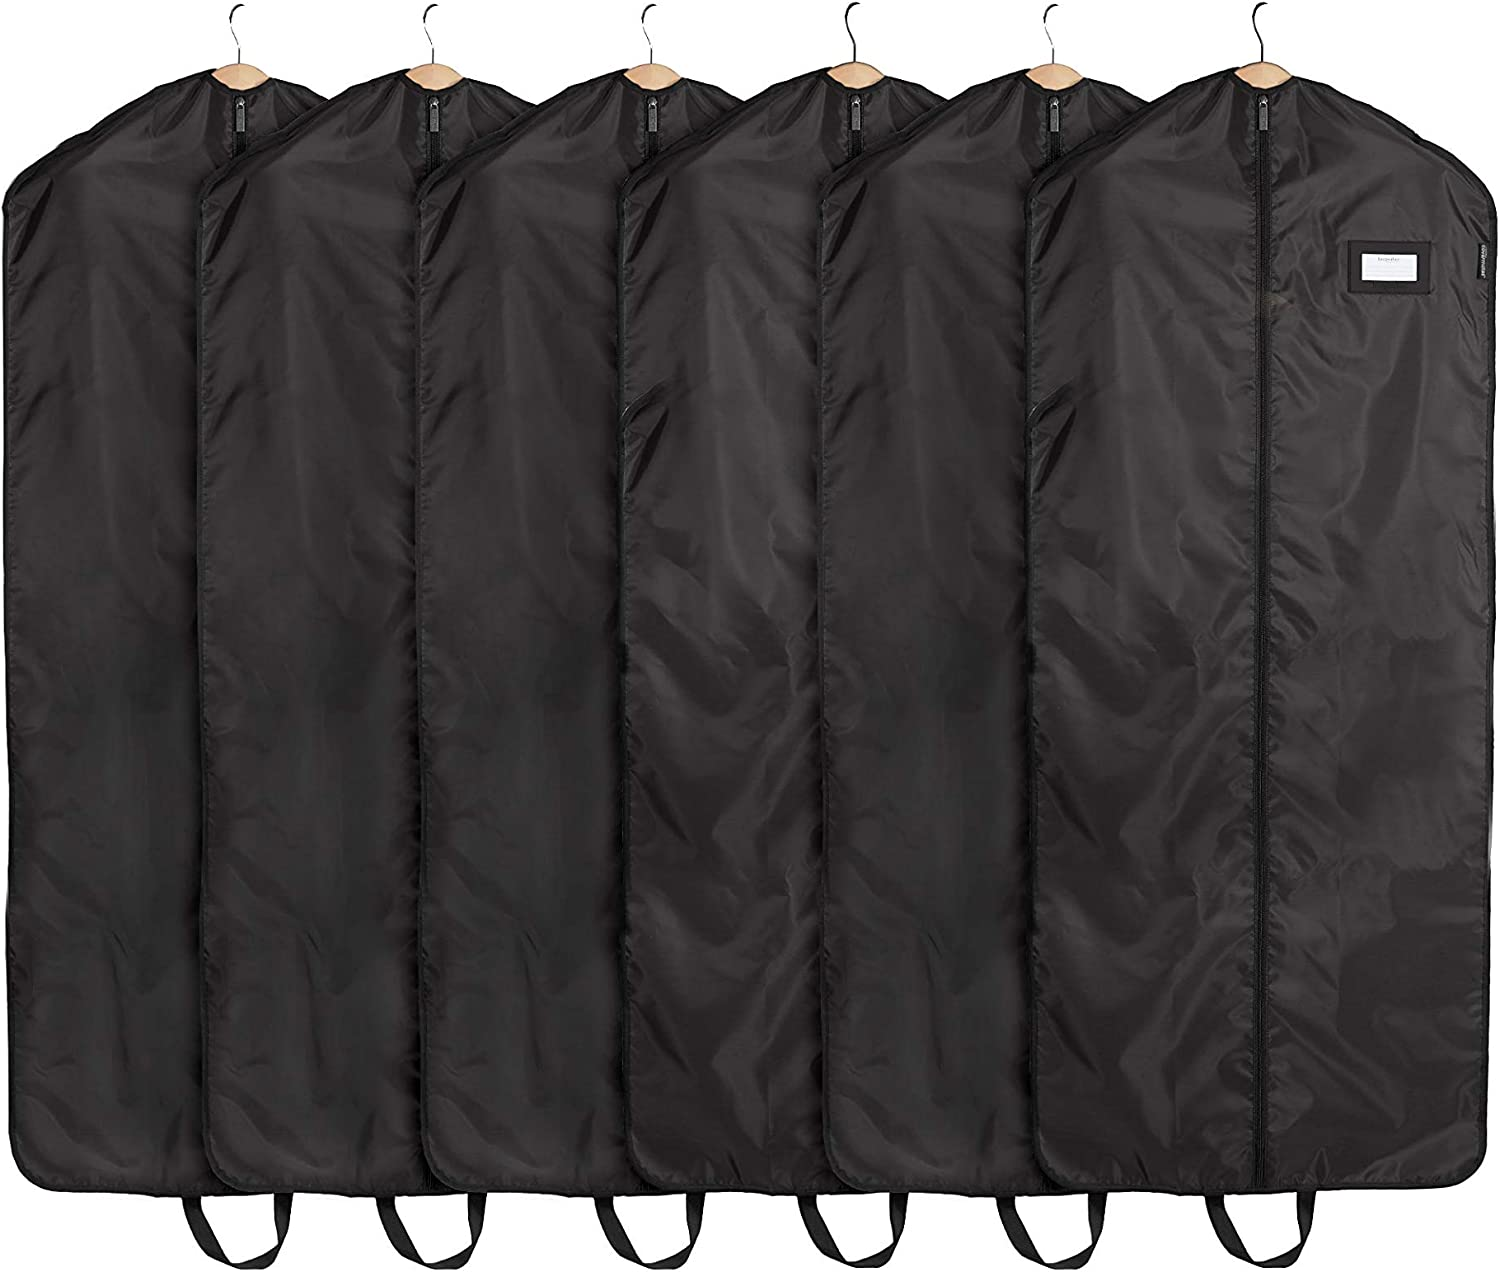 Covermates Keepsakes Garment Bag Max 60% OFF Set - Full Spring new work one after another Premium Polyester